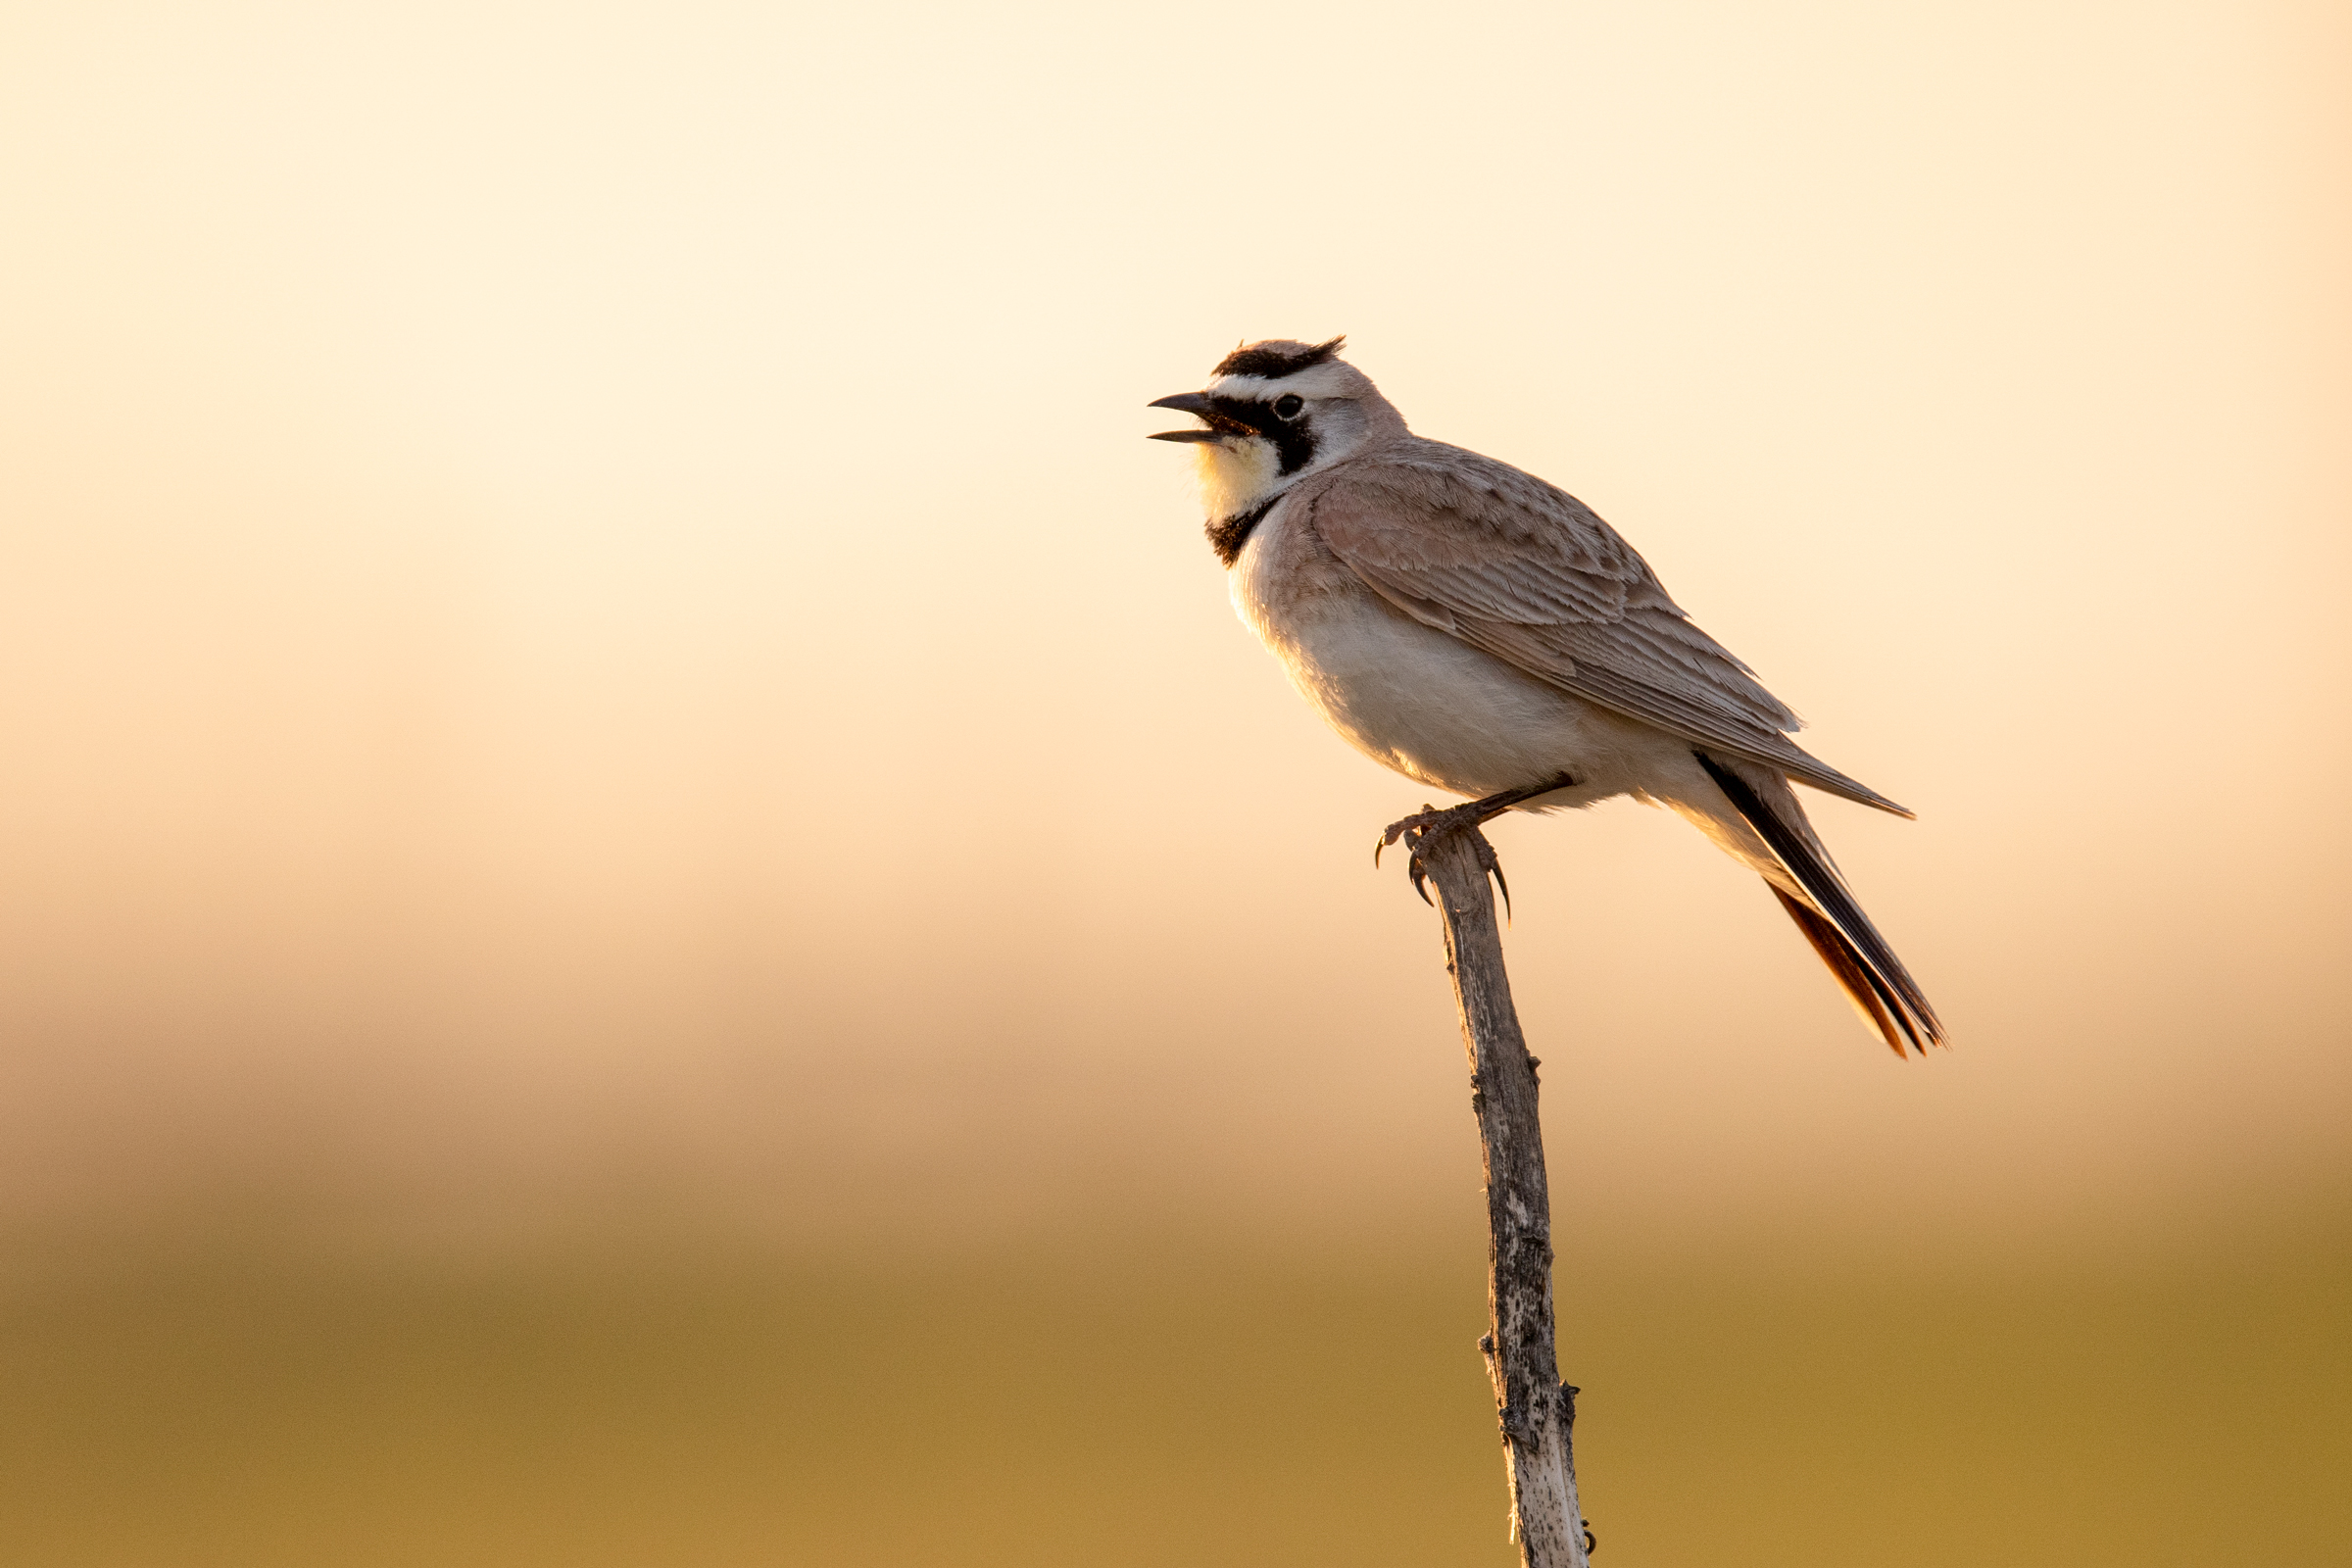 The Horned Lark is threatened by wildfire and spring heat waves, both worsened by global warming. Evan Barrientos/Audubon